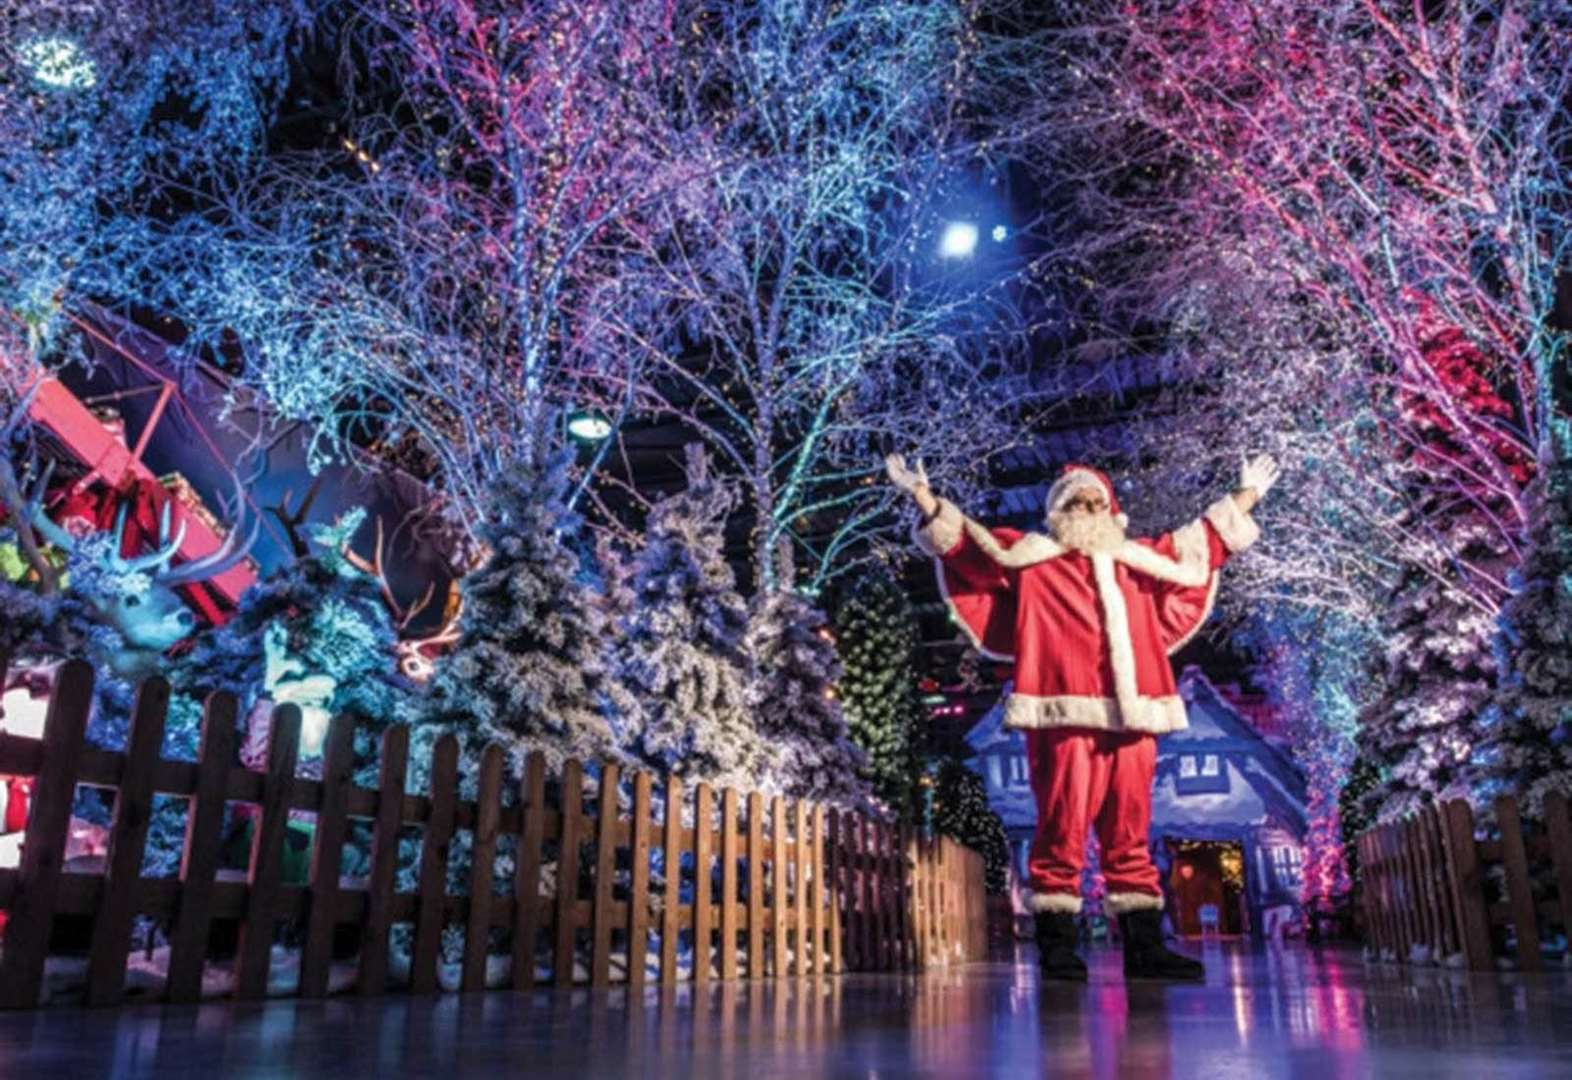 Day trips and short breaks this Christmas